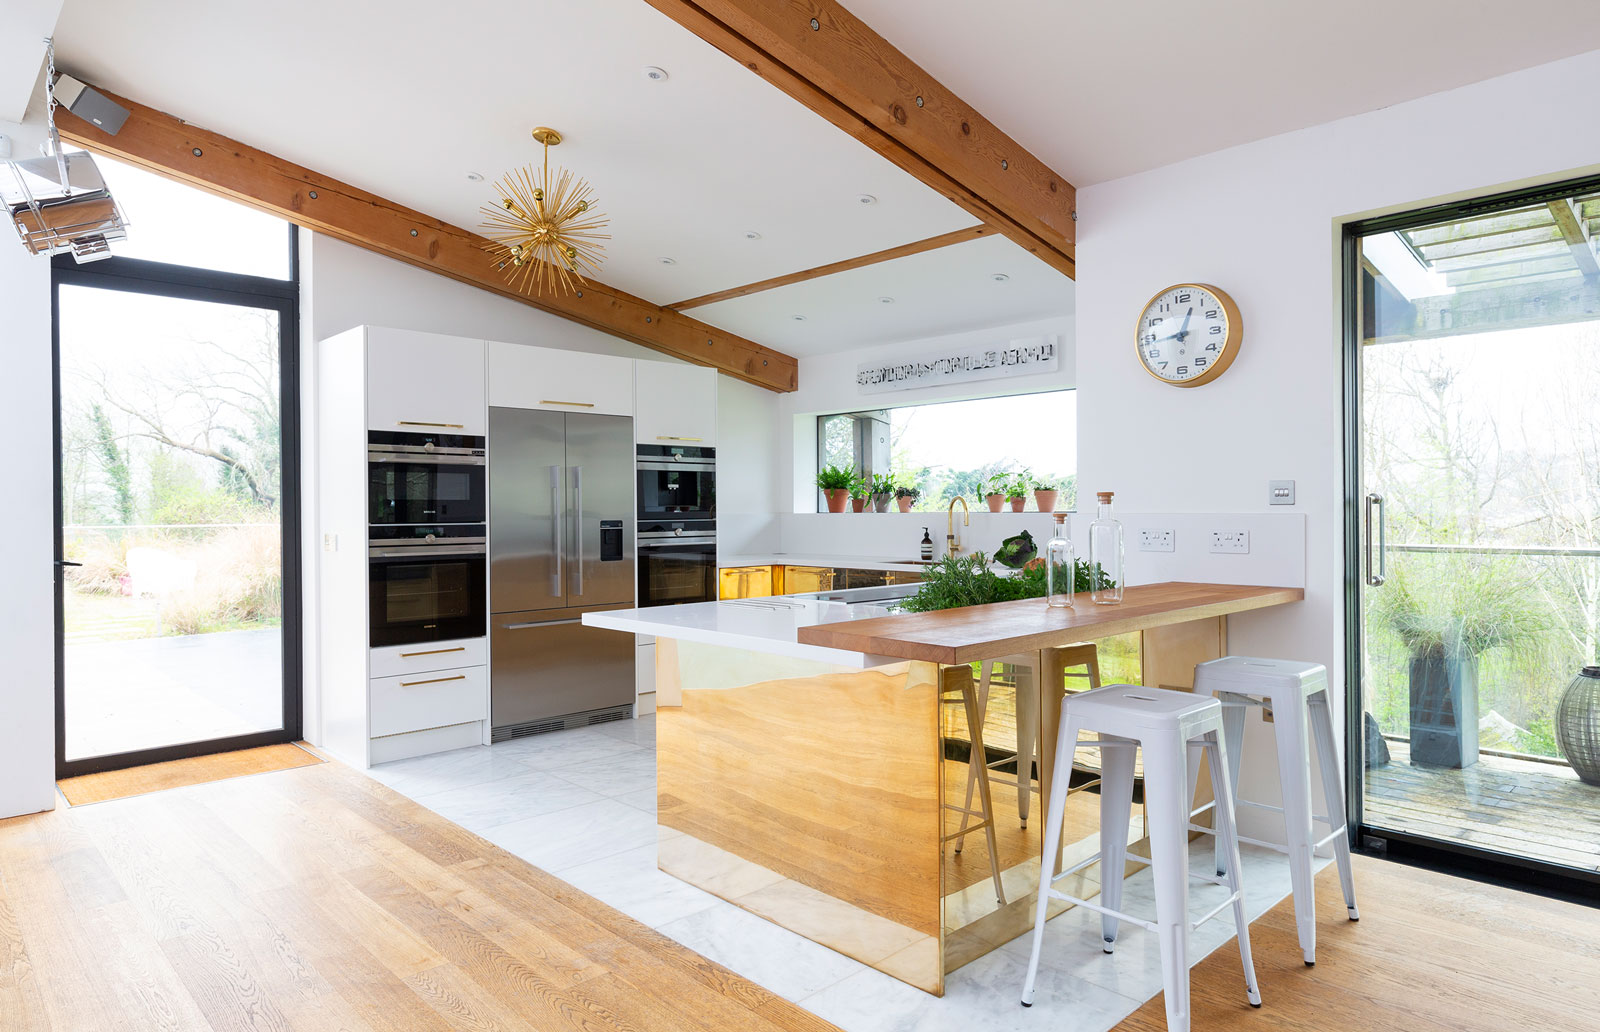 Bespoke characterful kitchen view